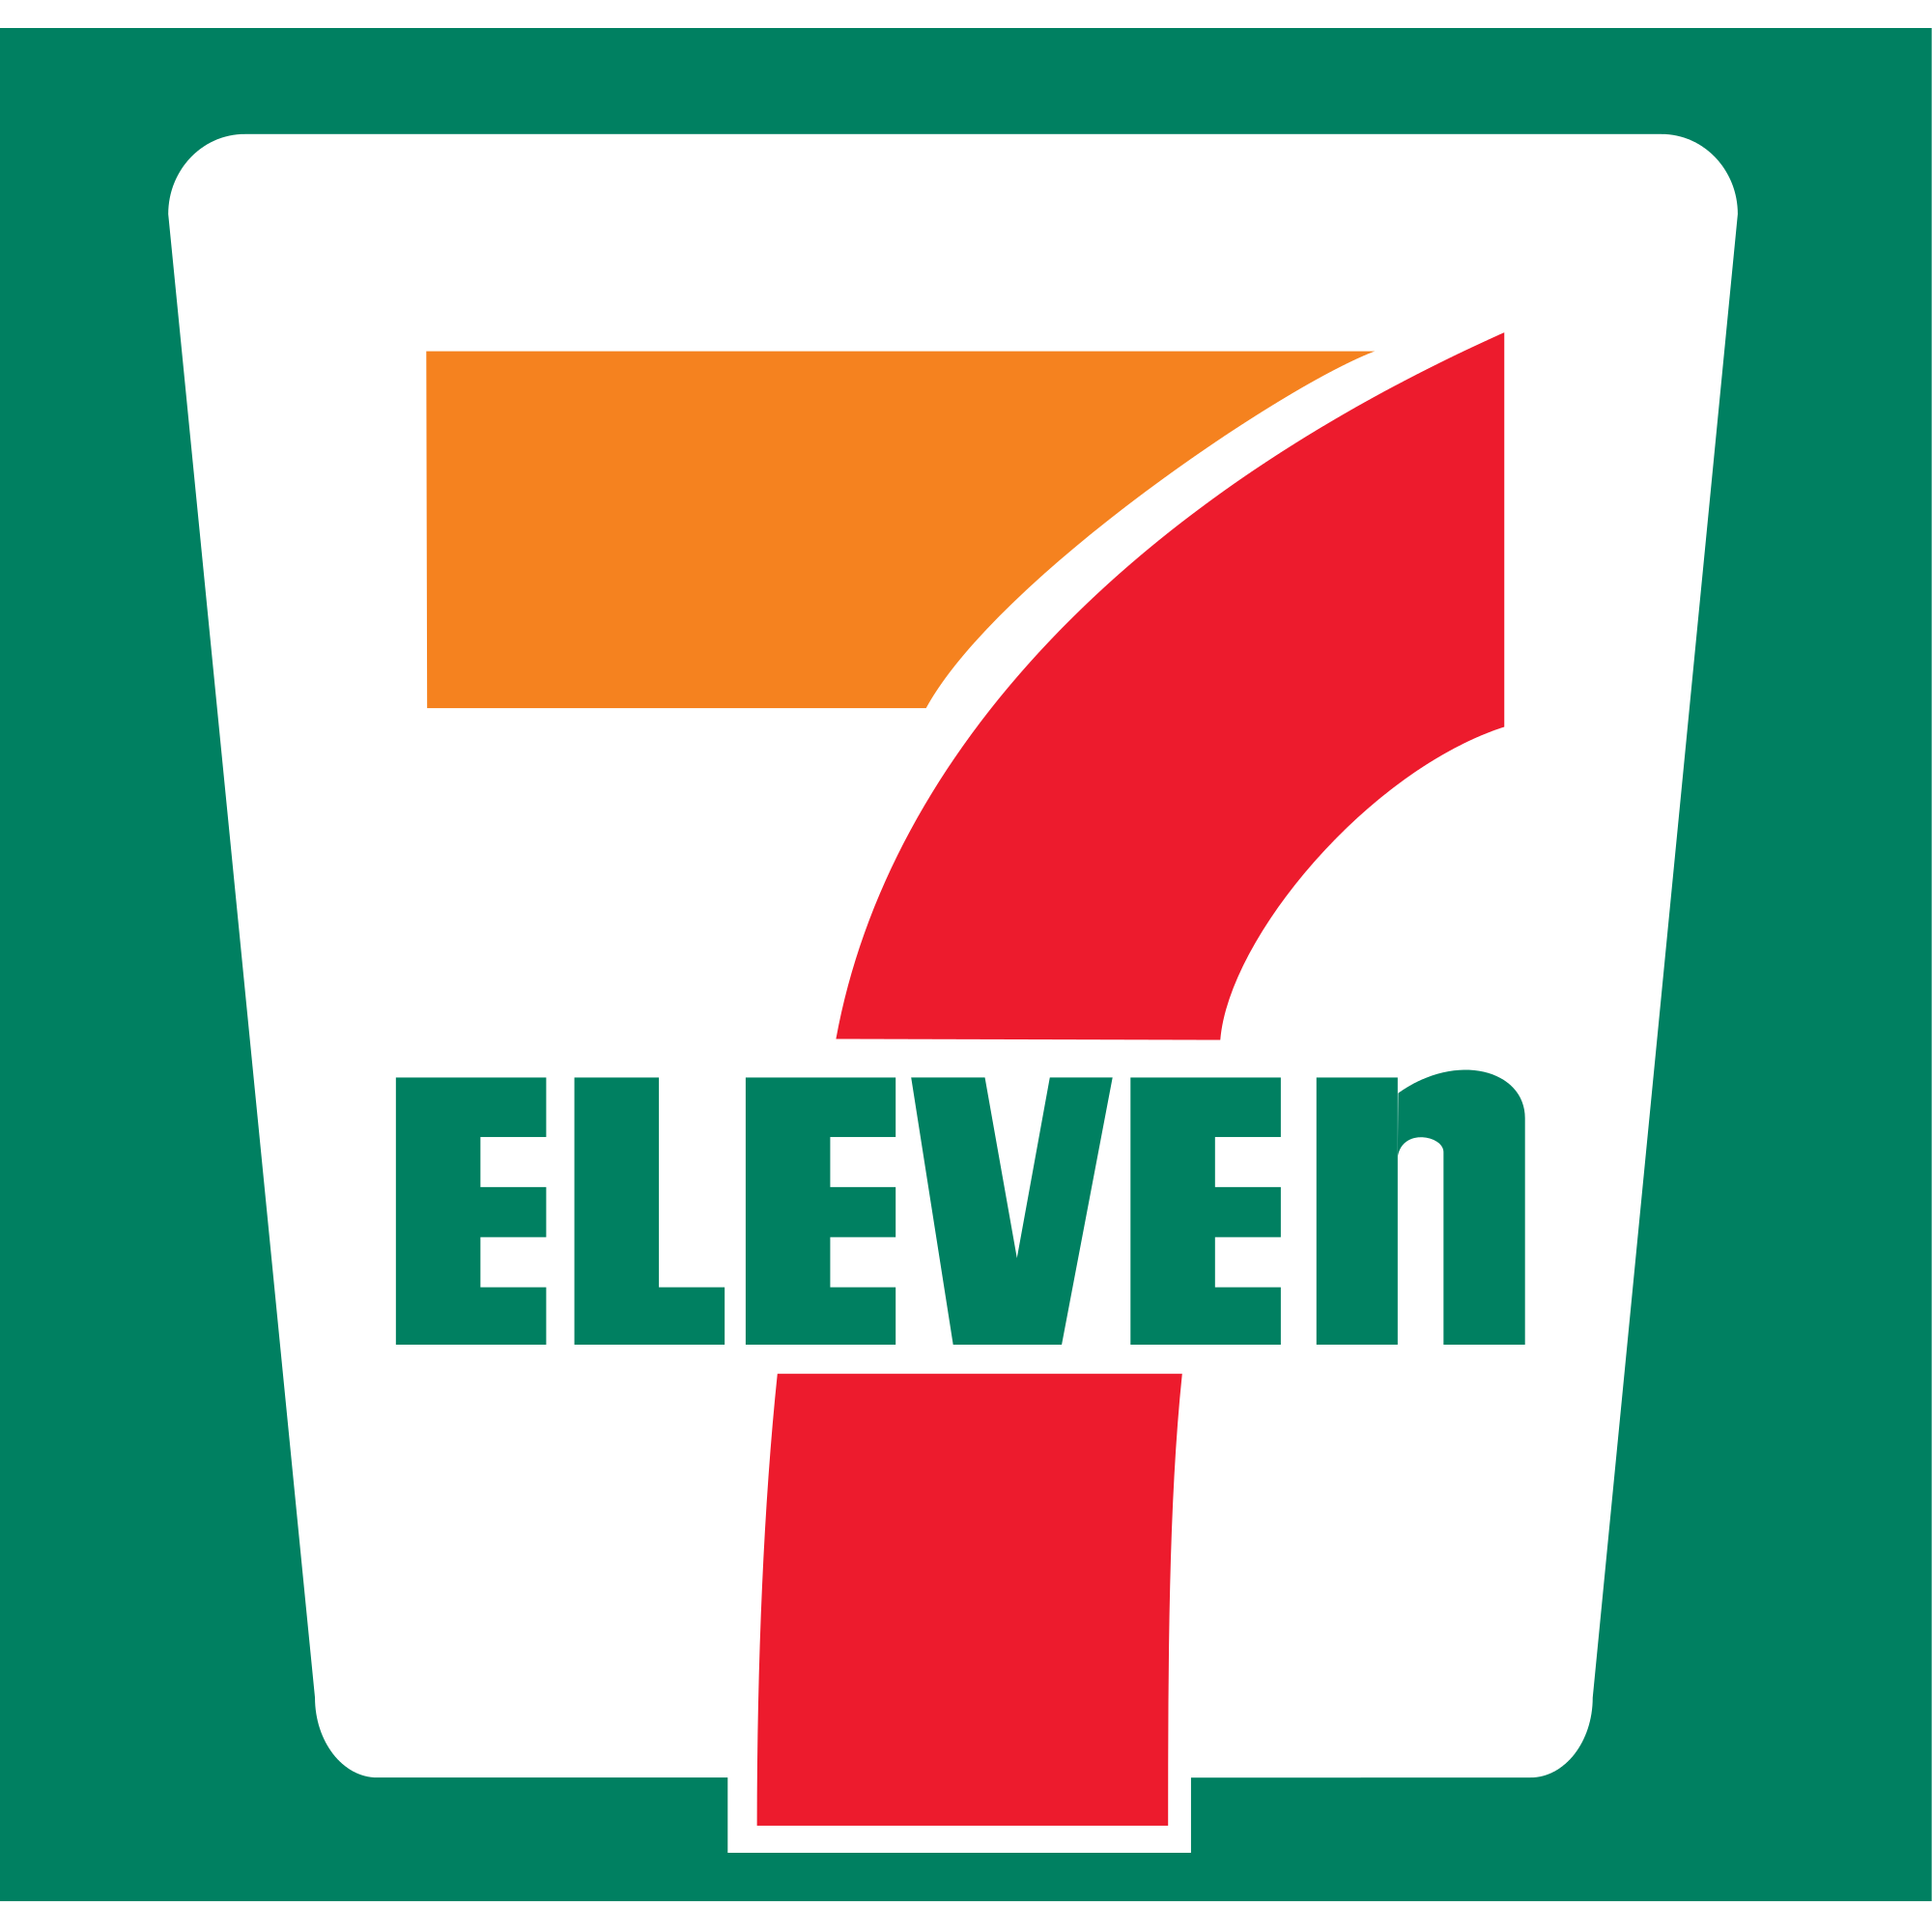 7-Eleven - Walnut Creek, CA - Restaurants